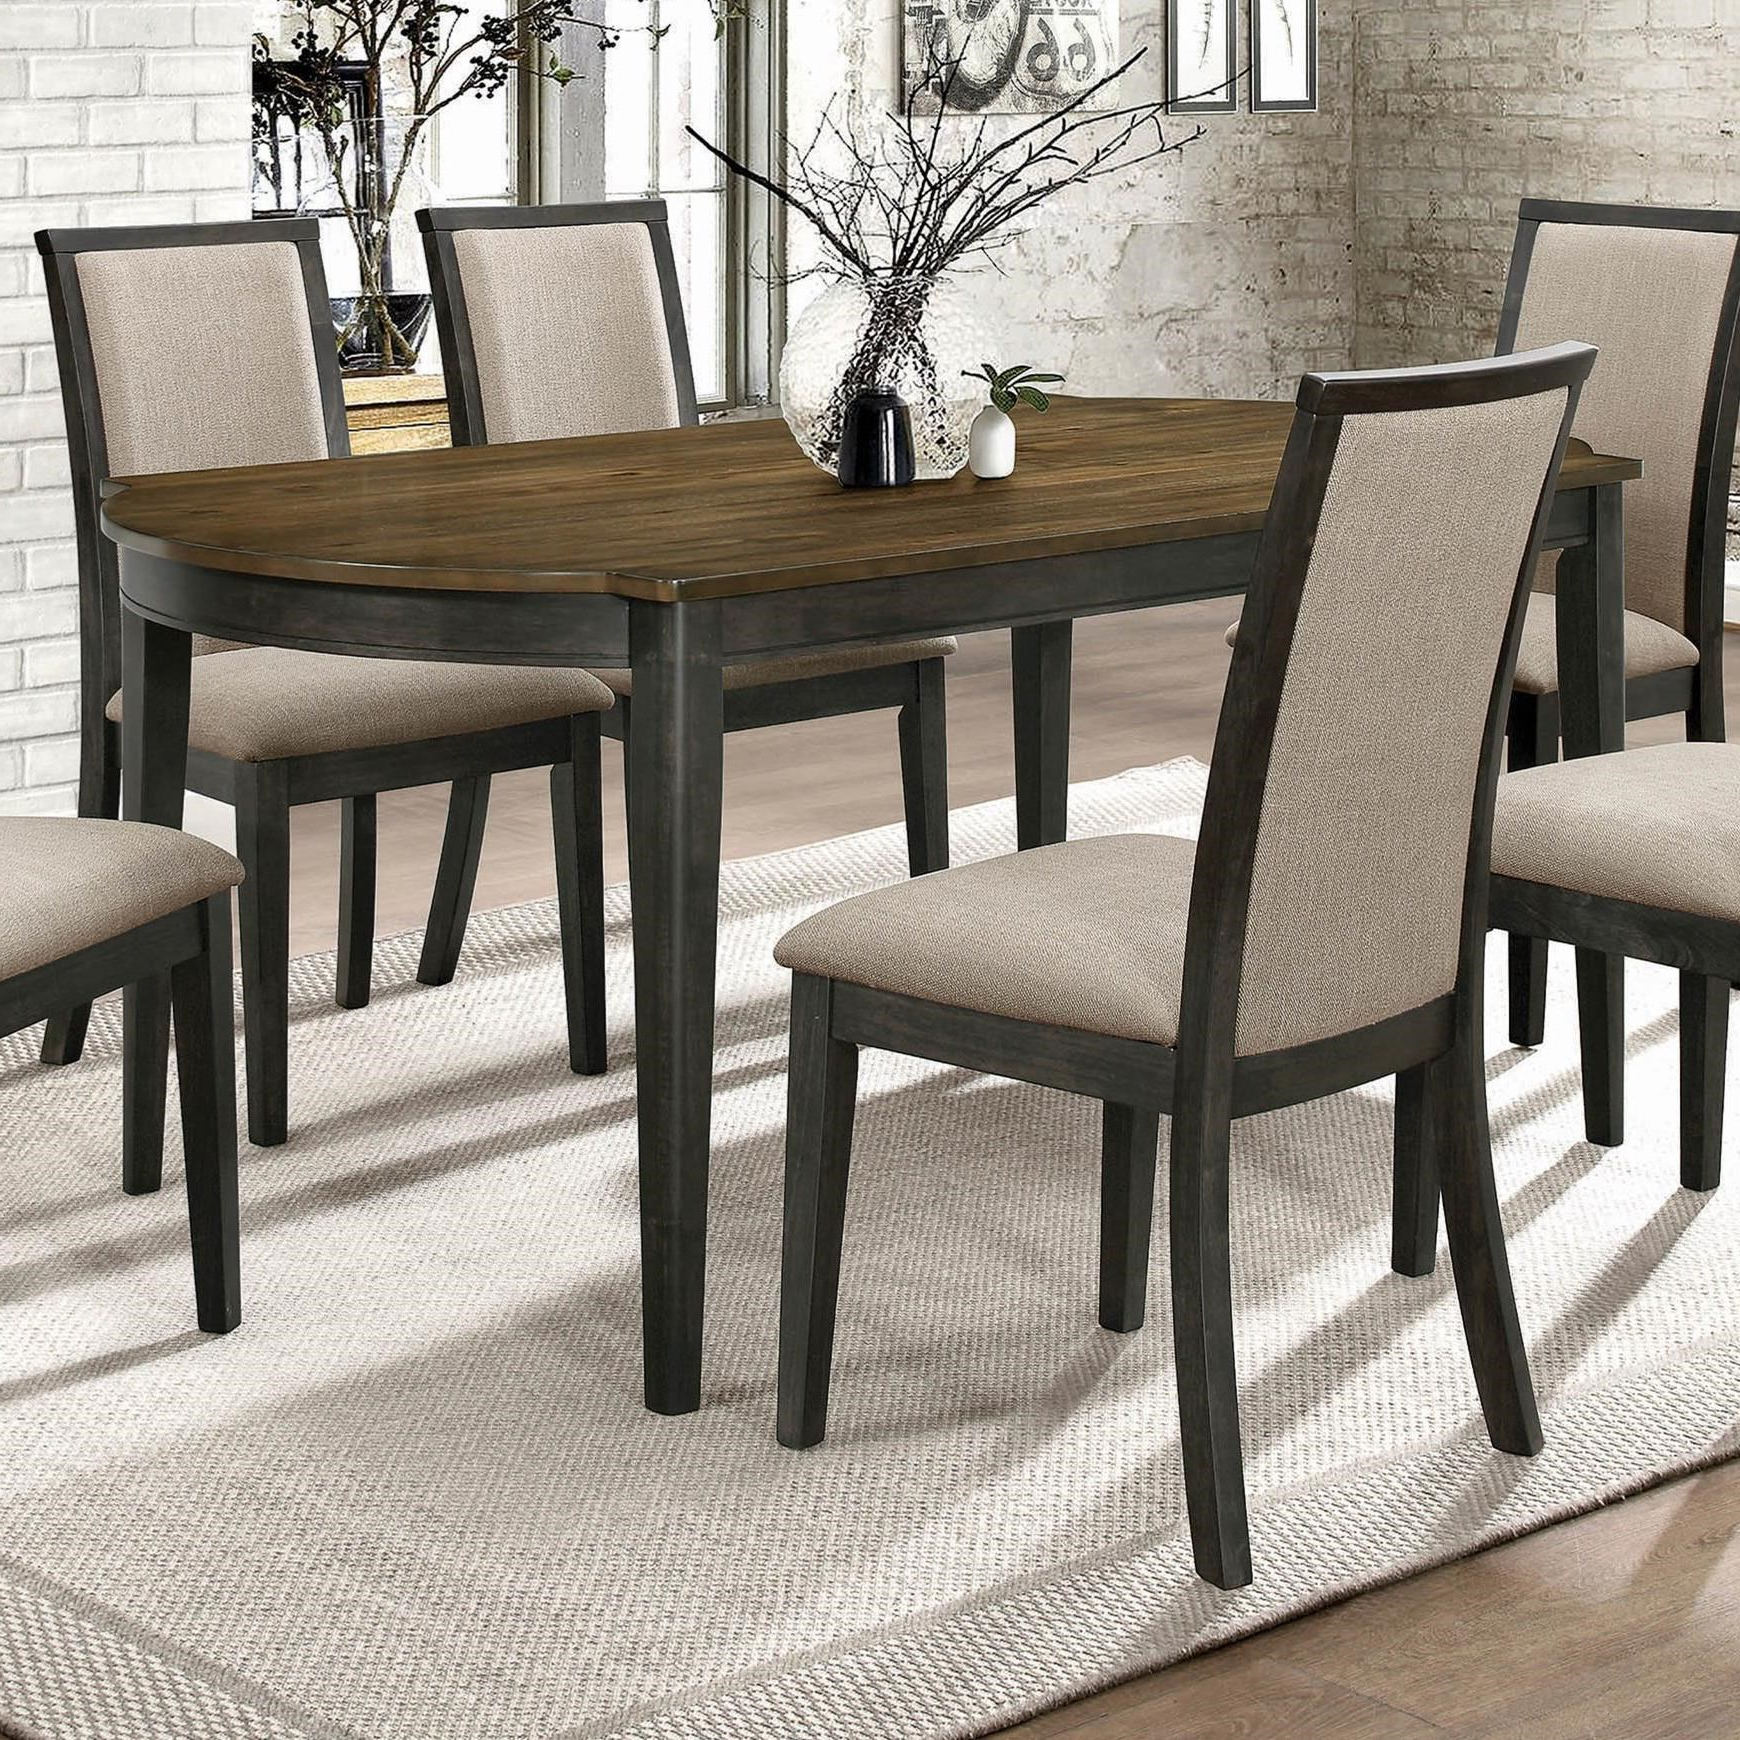 Trendy Charcoal Transitional 6 Seating Rectangular Dining Tables For Coaster Clarksville Transitional Dining Table With 2 Tone (View 15 of 25)